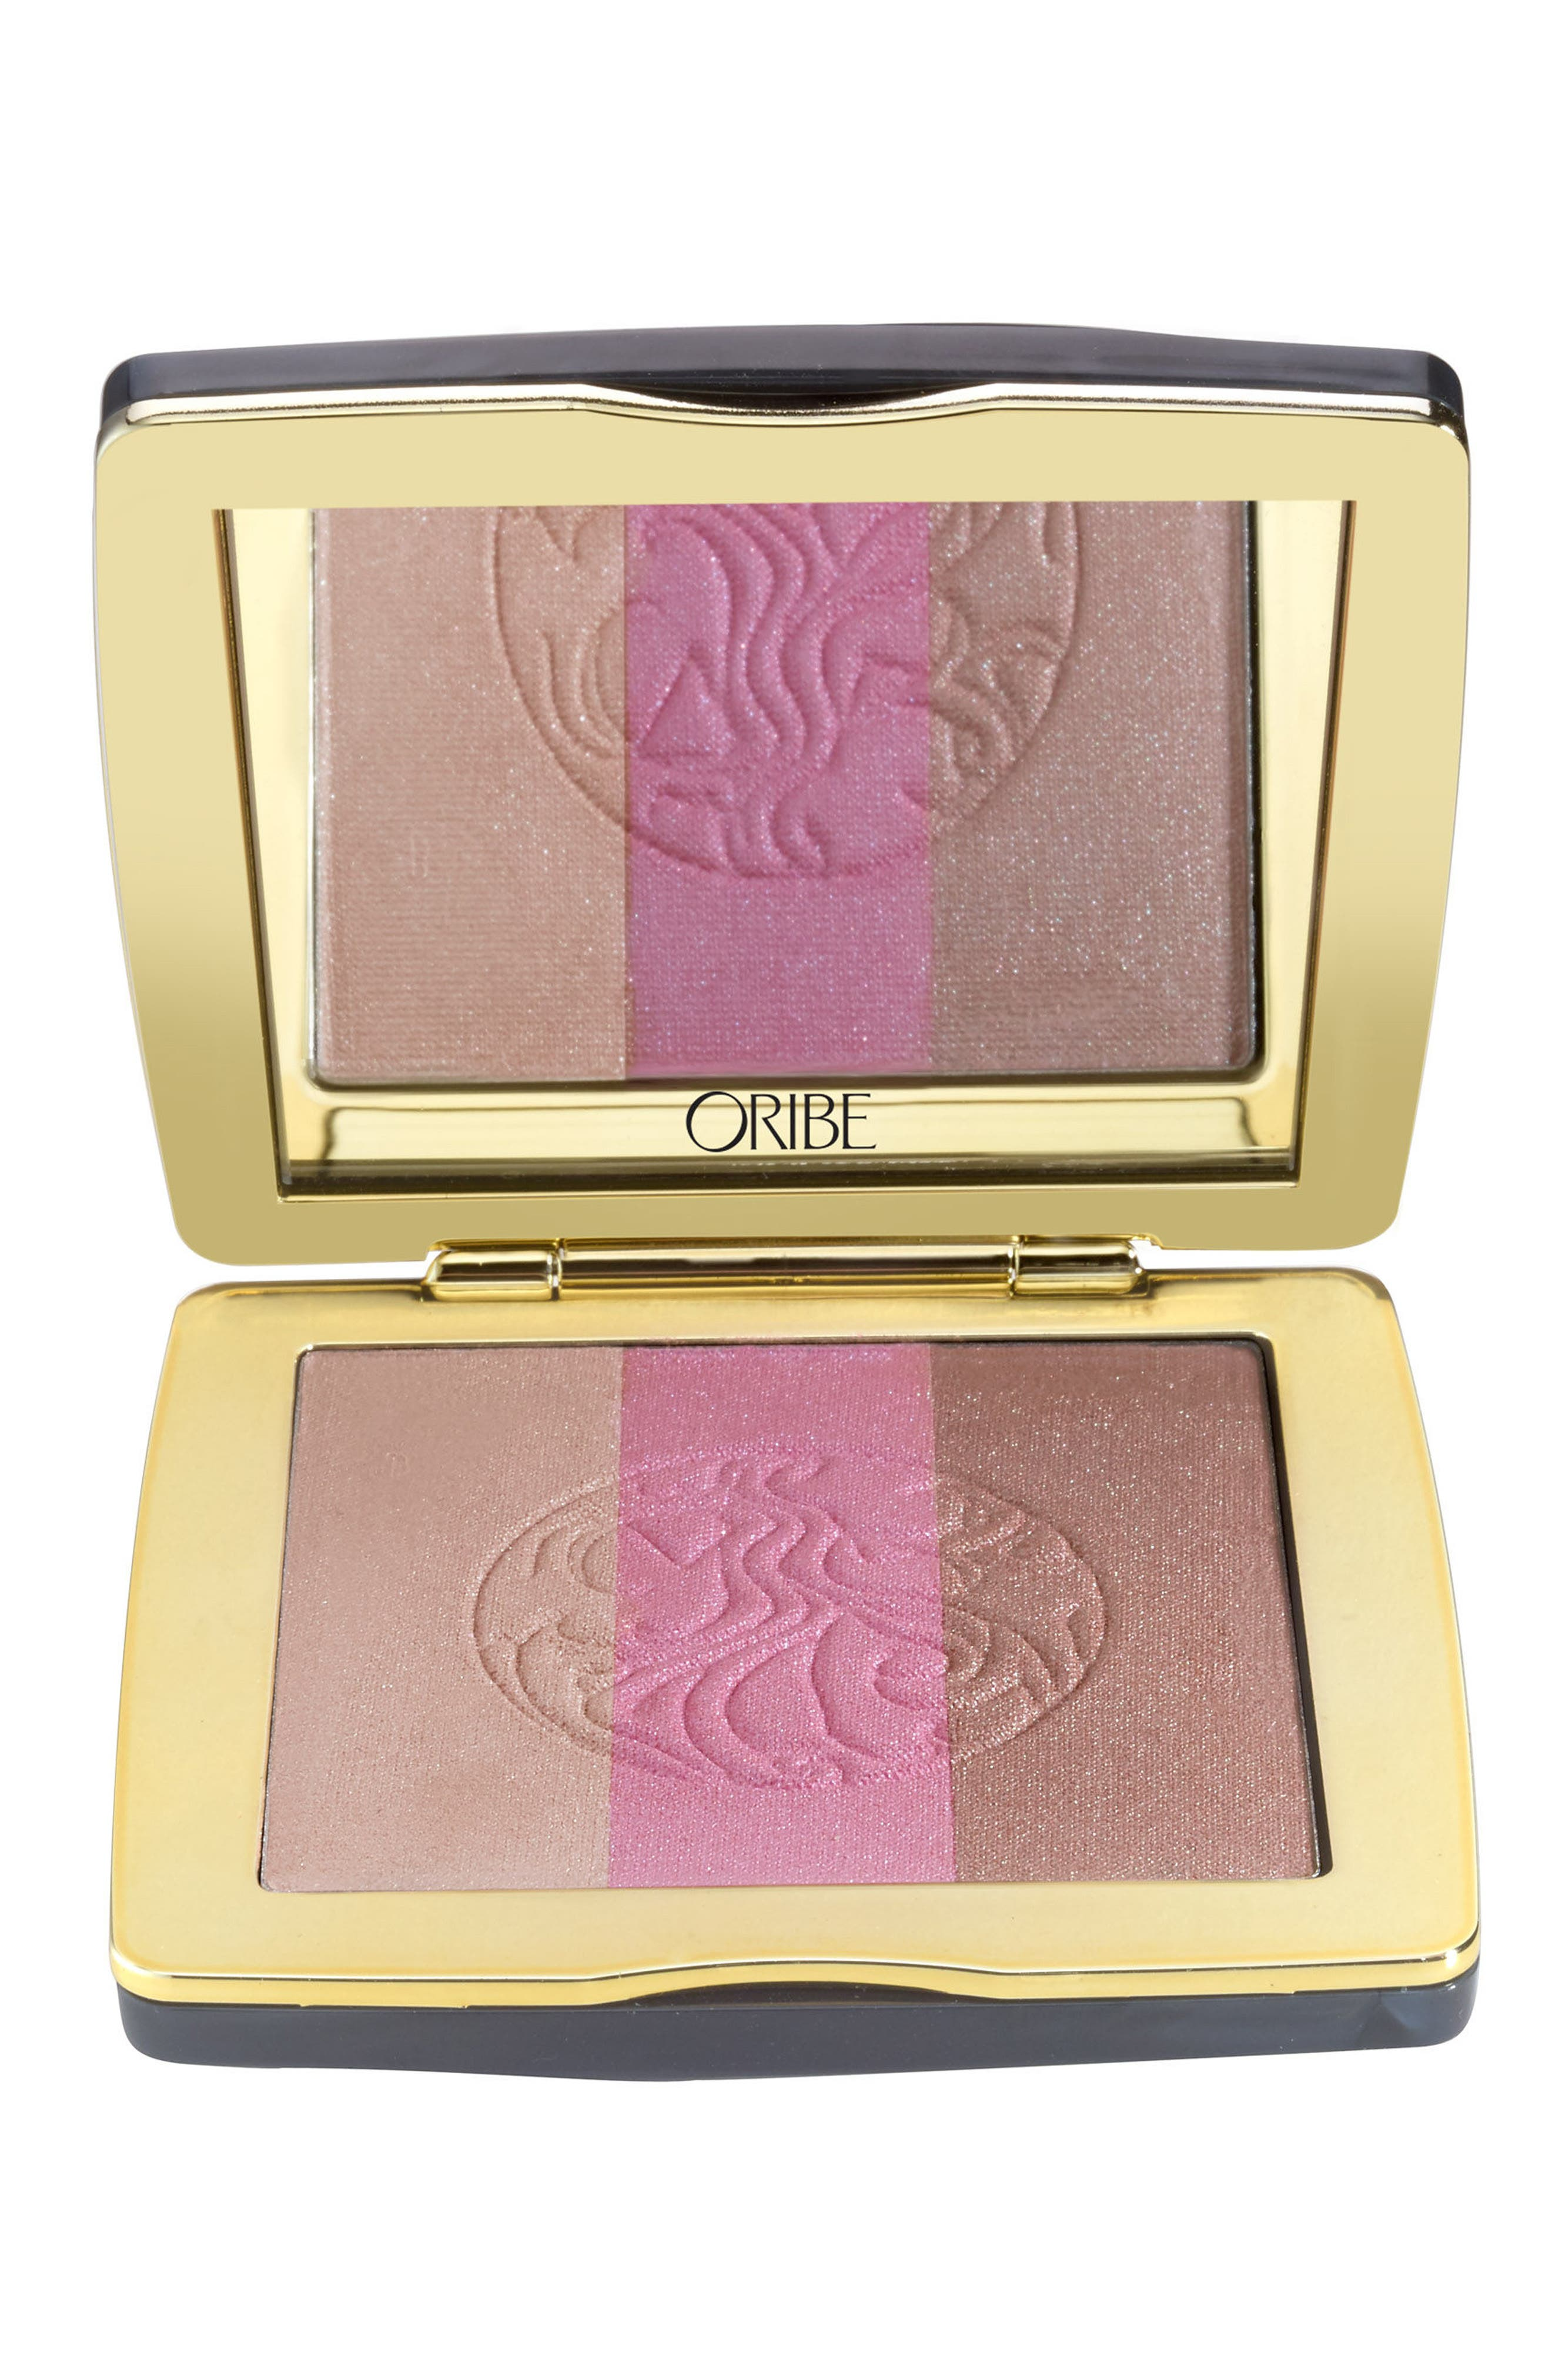 SPACE.NK.apothecary Oribe Illuminating Face Palette